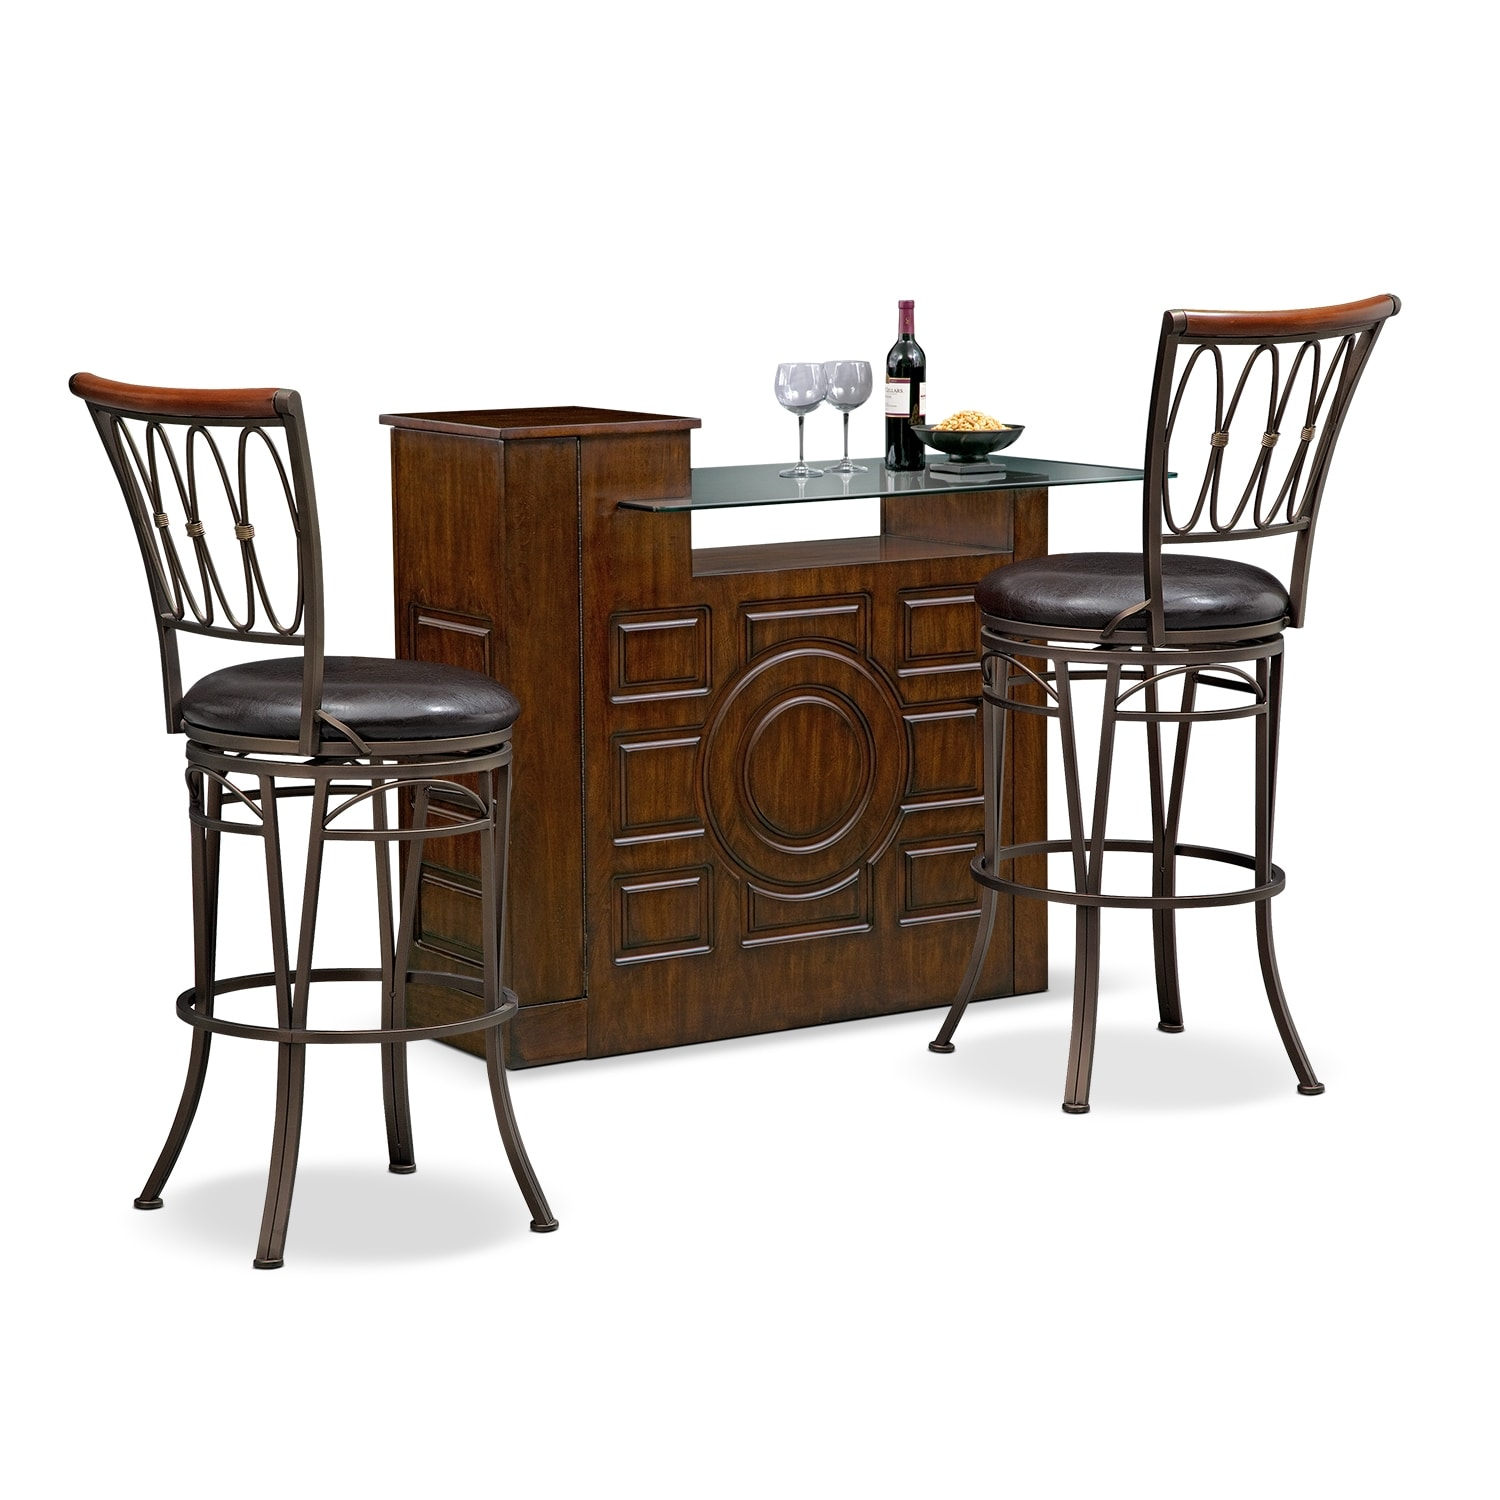 Accent and Occasional Furniture - Origins Blake 3 Pc. Bar Set